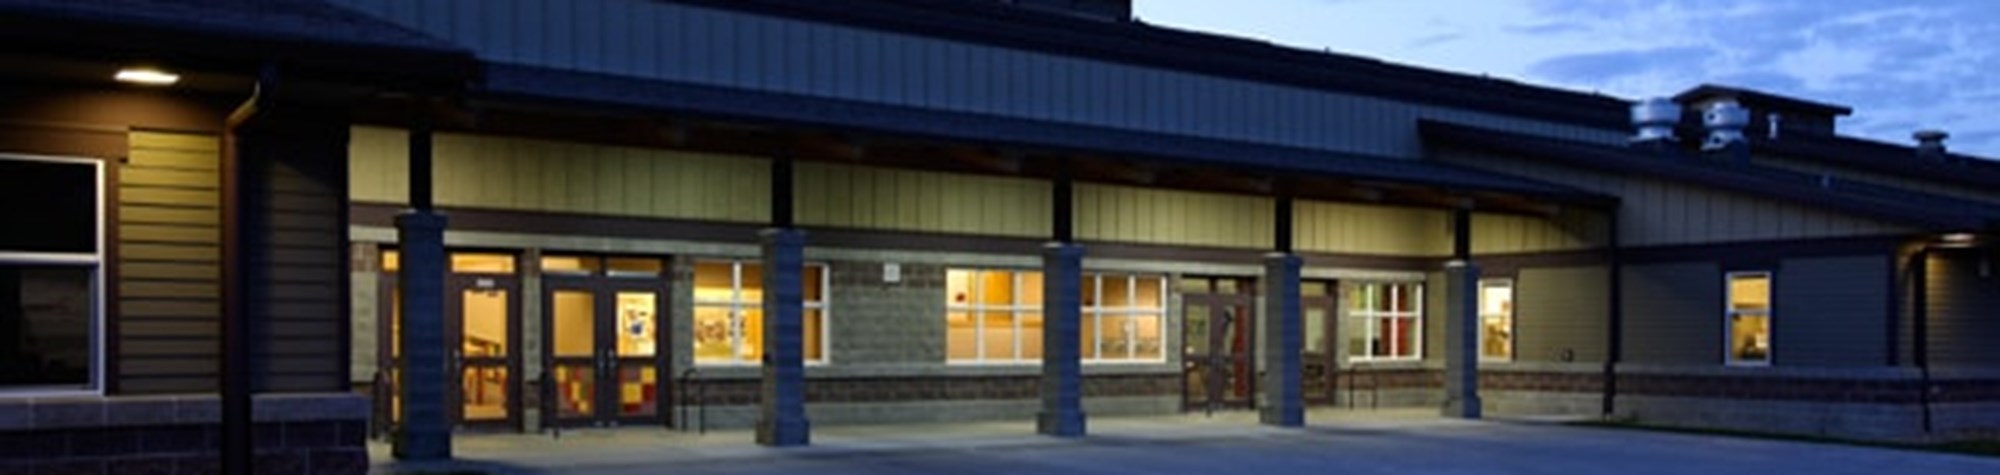 Northern Heights Elementary